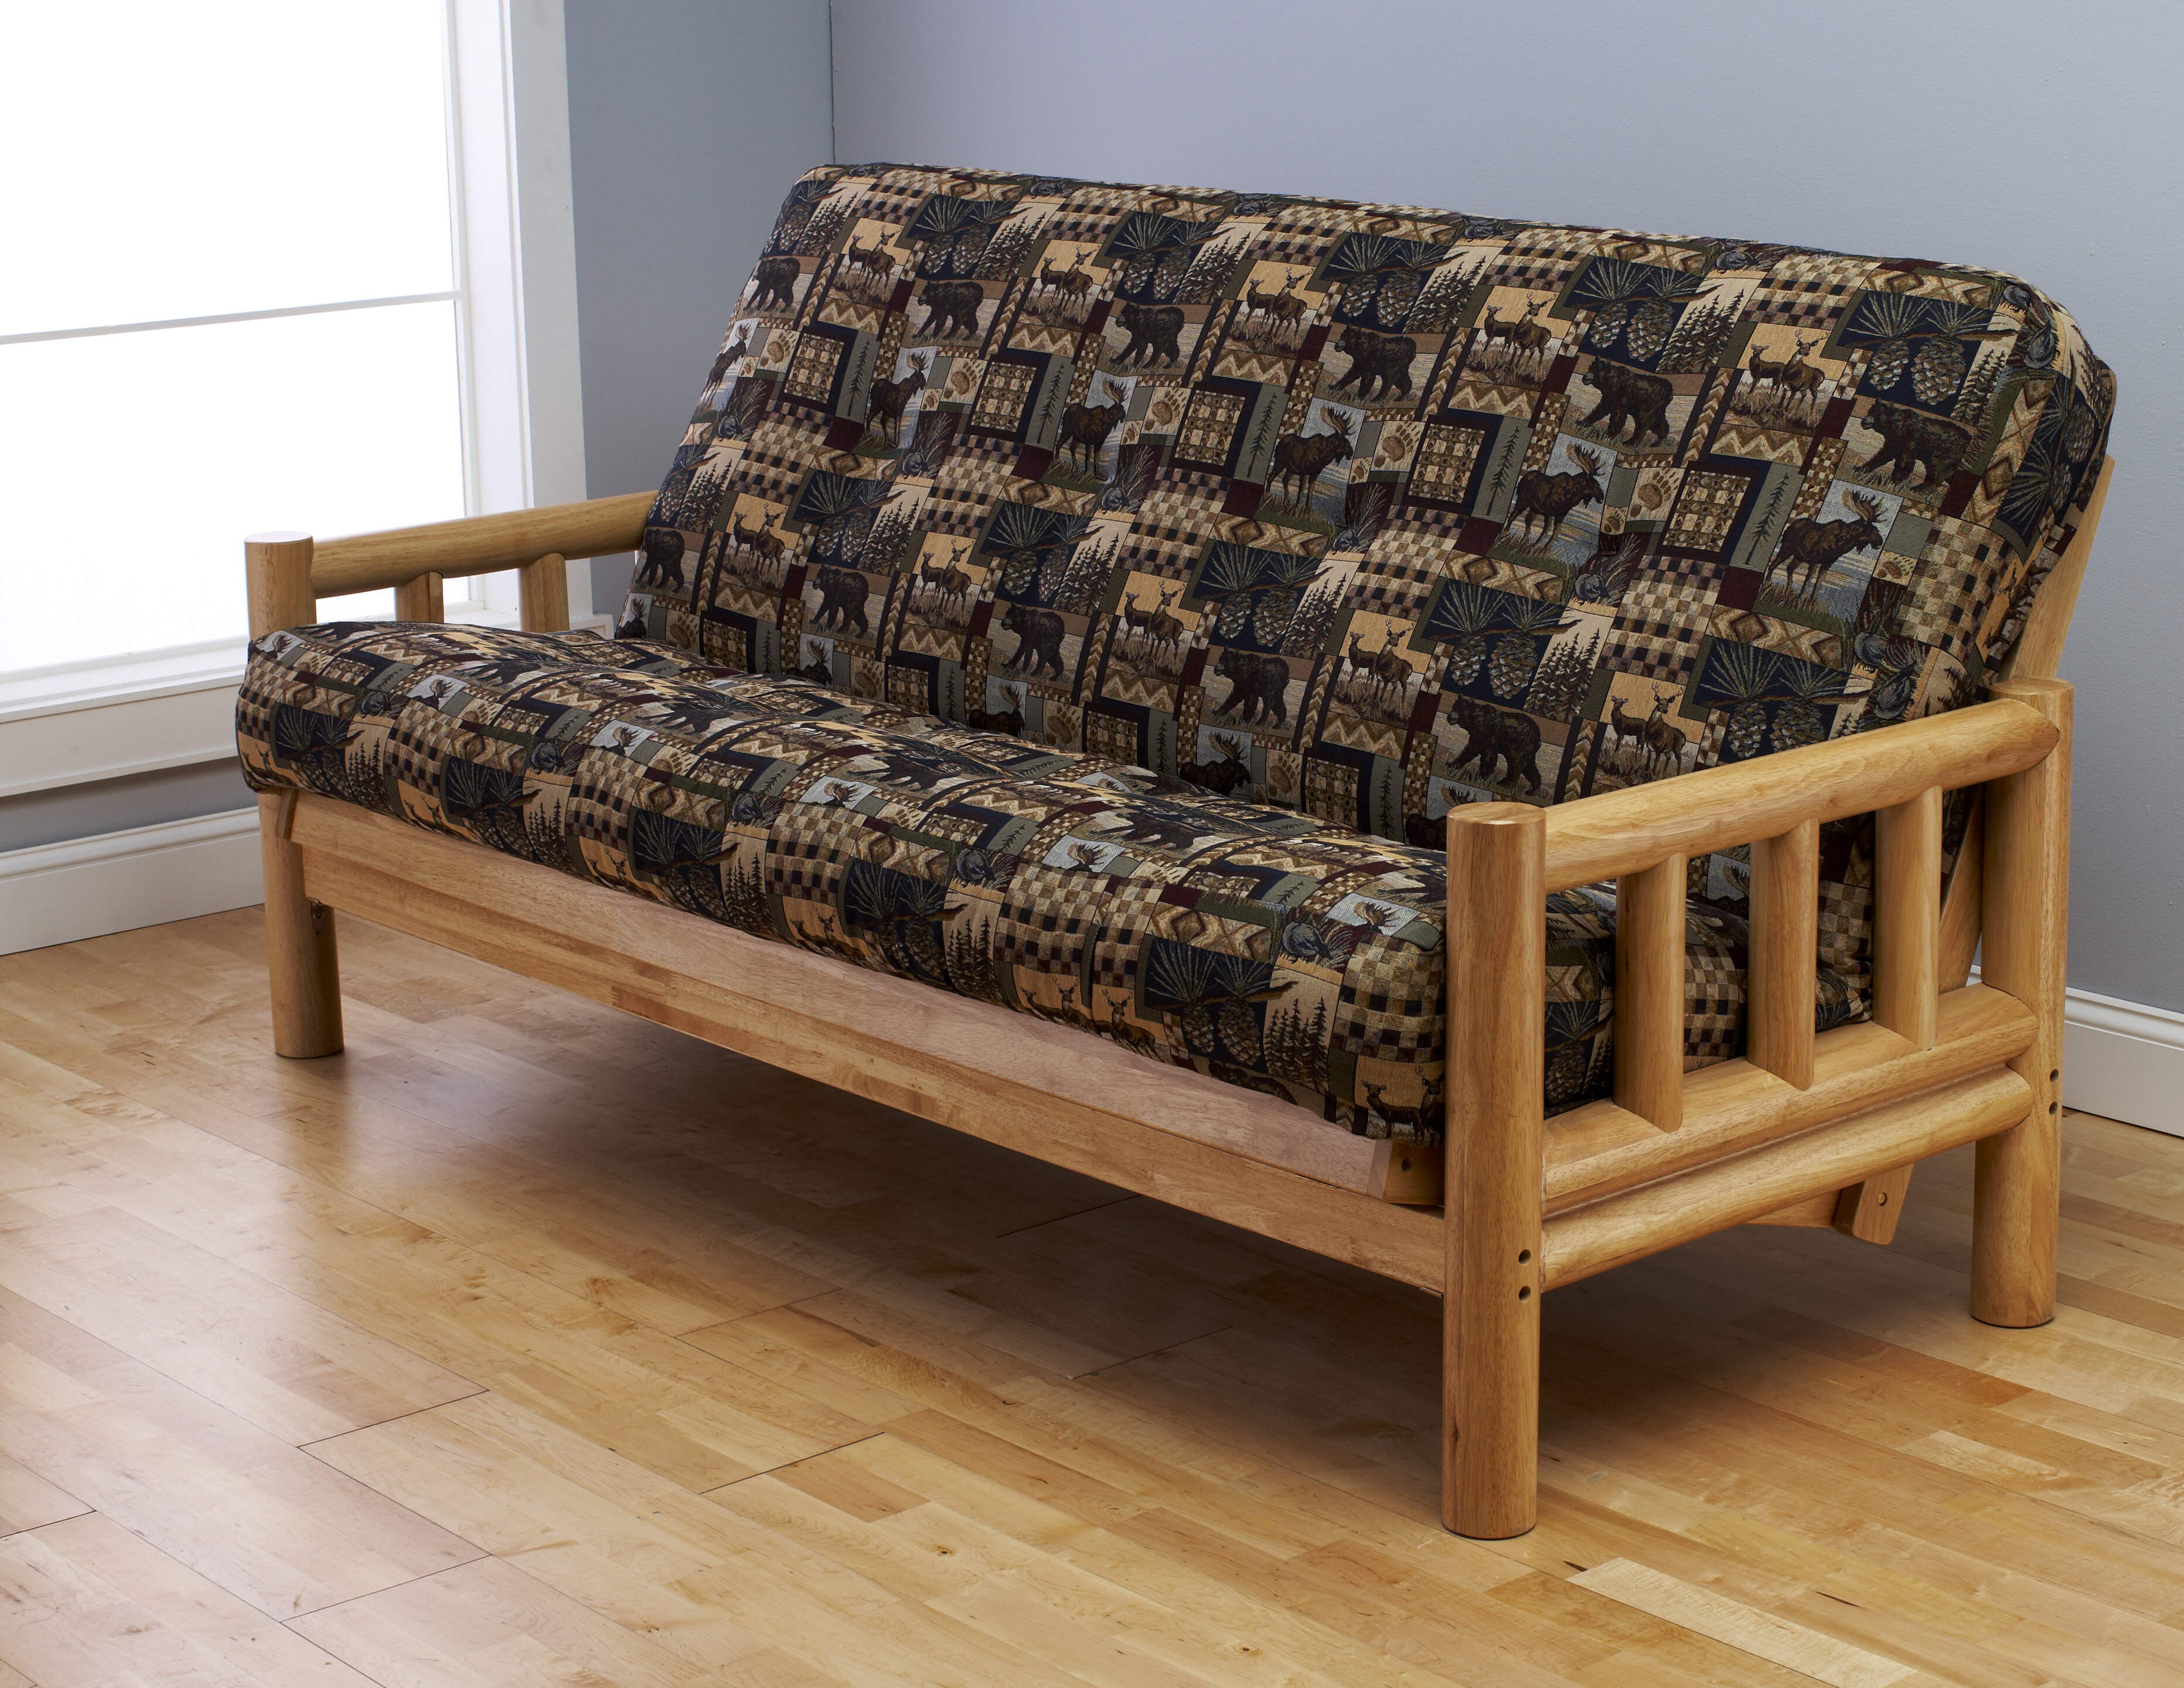 full garden product mattress clay futons shipping hansen inch size today long overstock home extra alder futon free